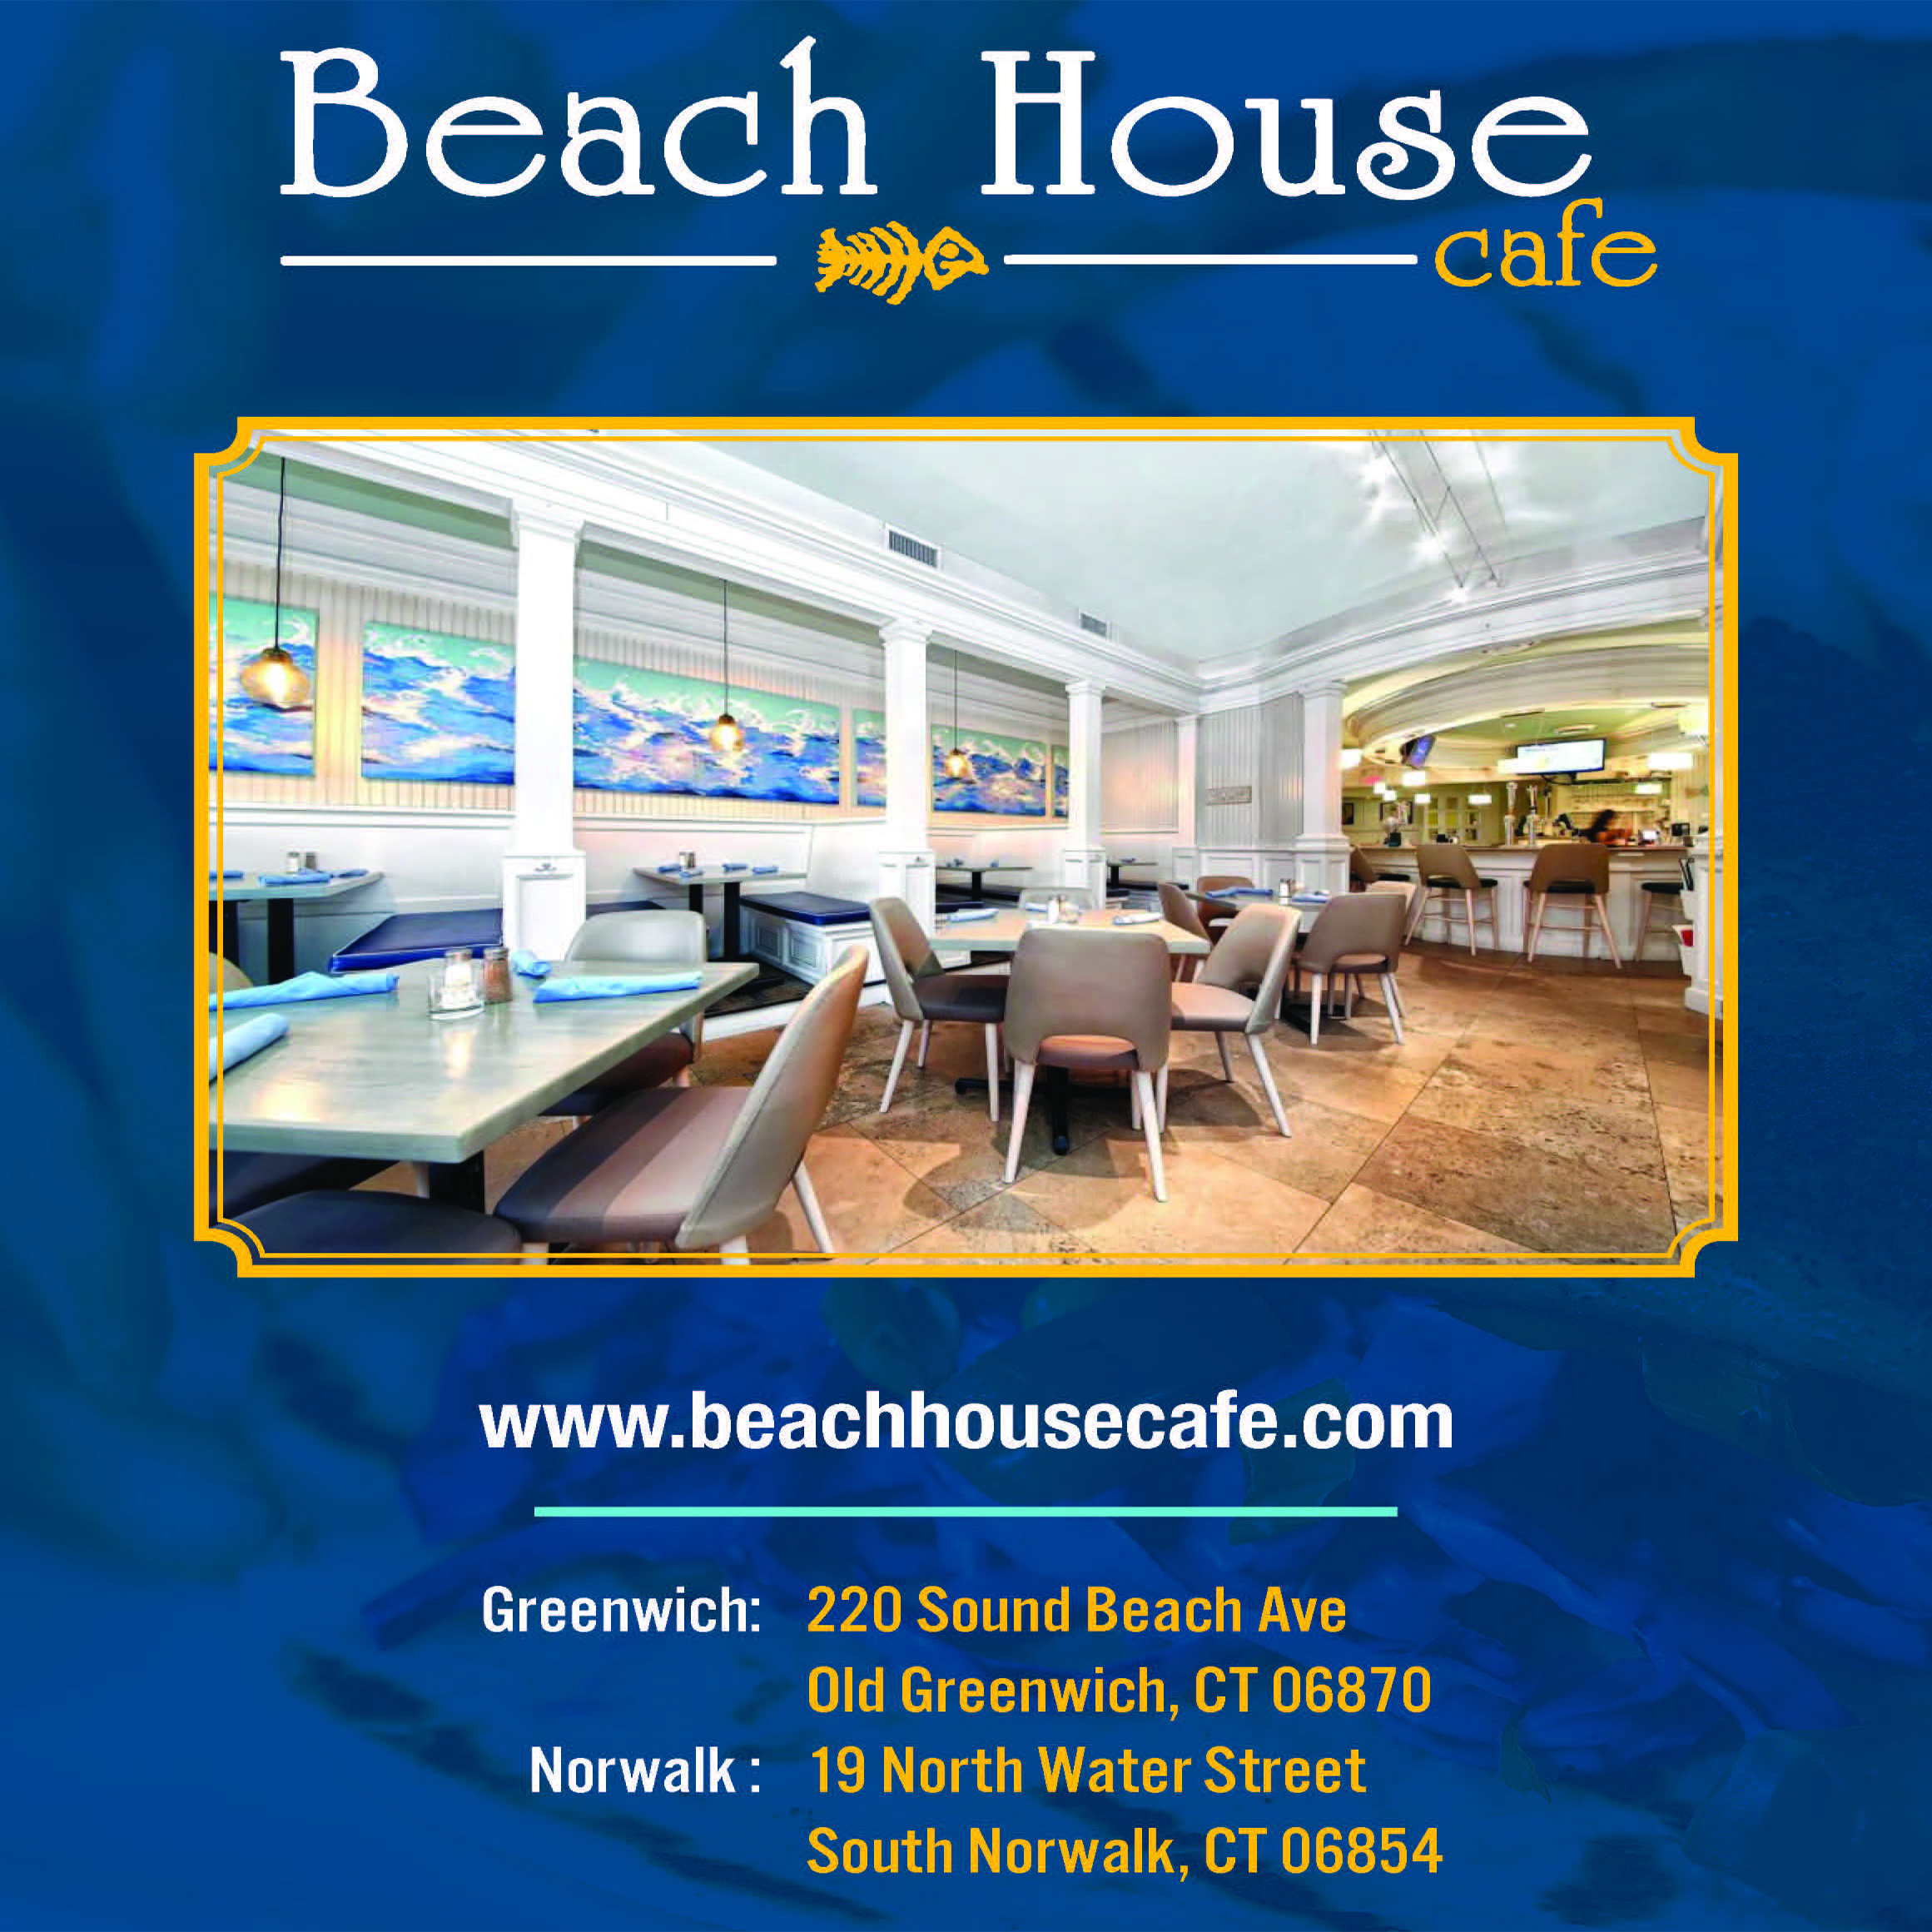 Beach House Ad2 (1)